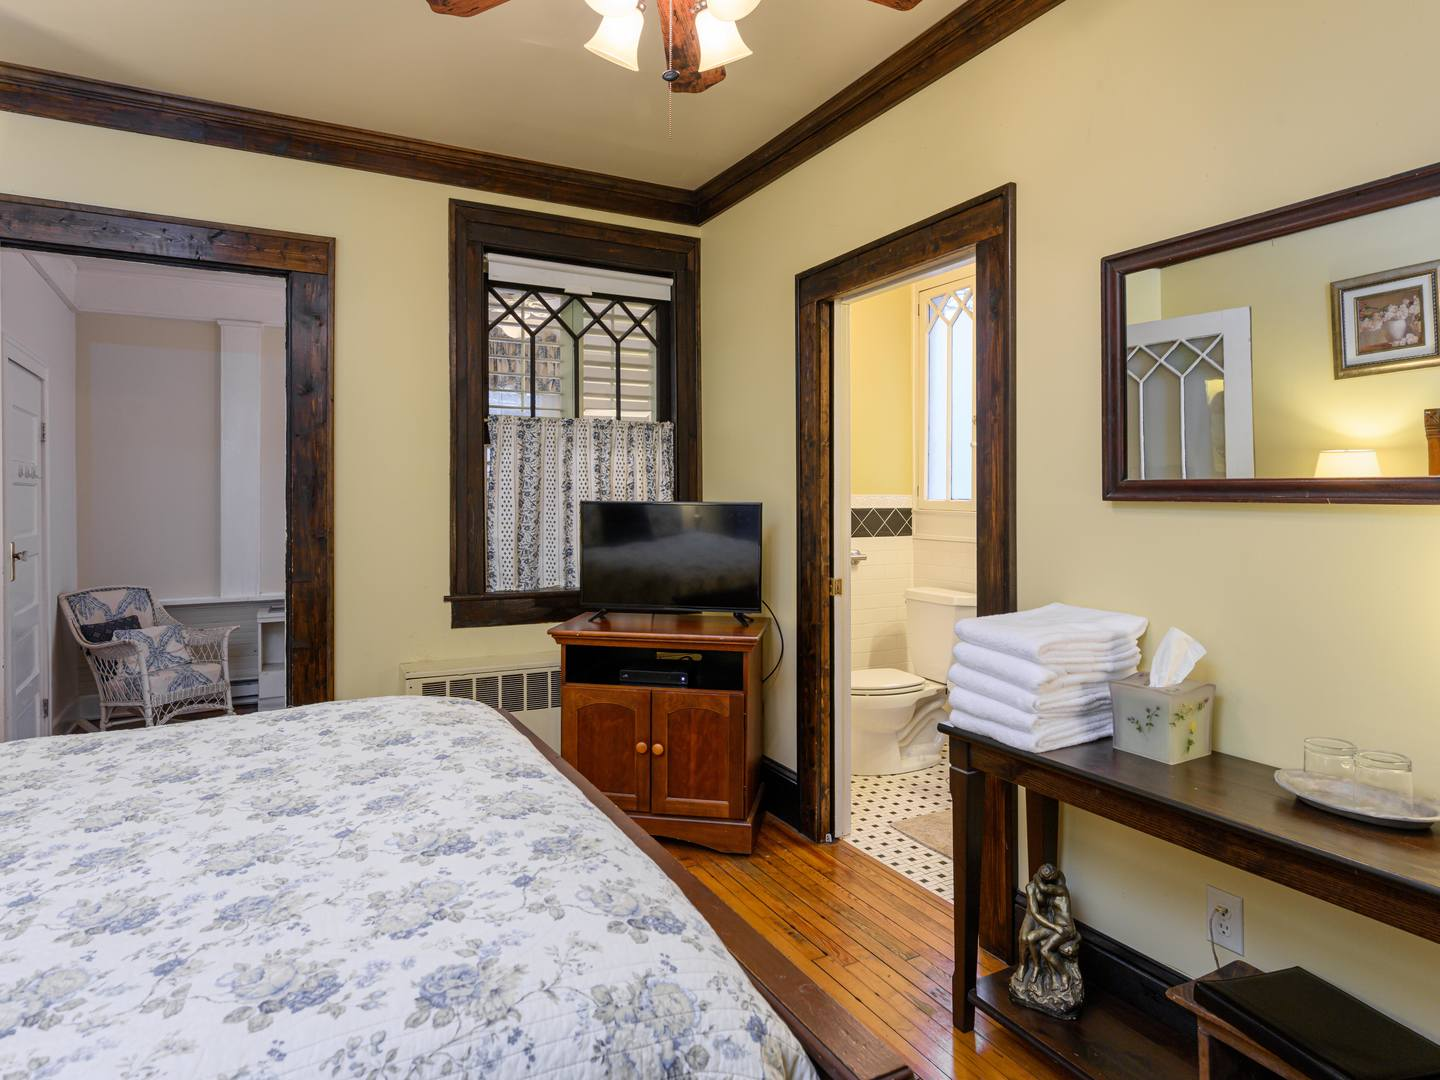 A bedroom with a bed and desk in a room at Oakland Cottage Bed and Breakfast.